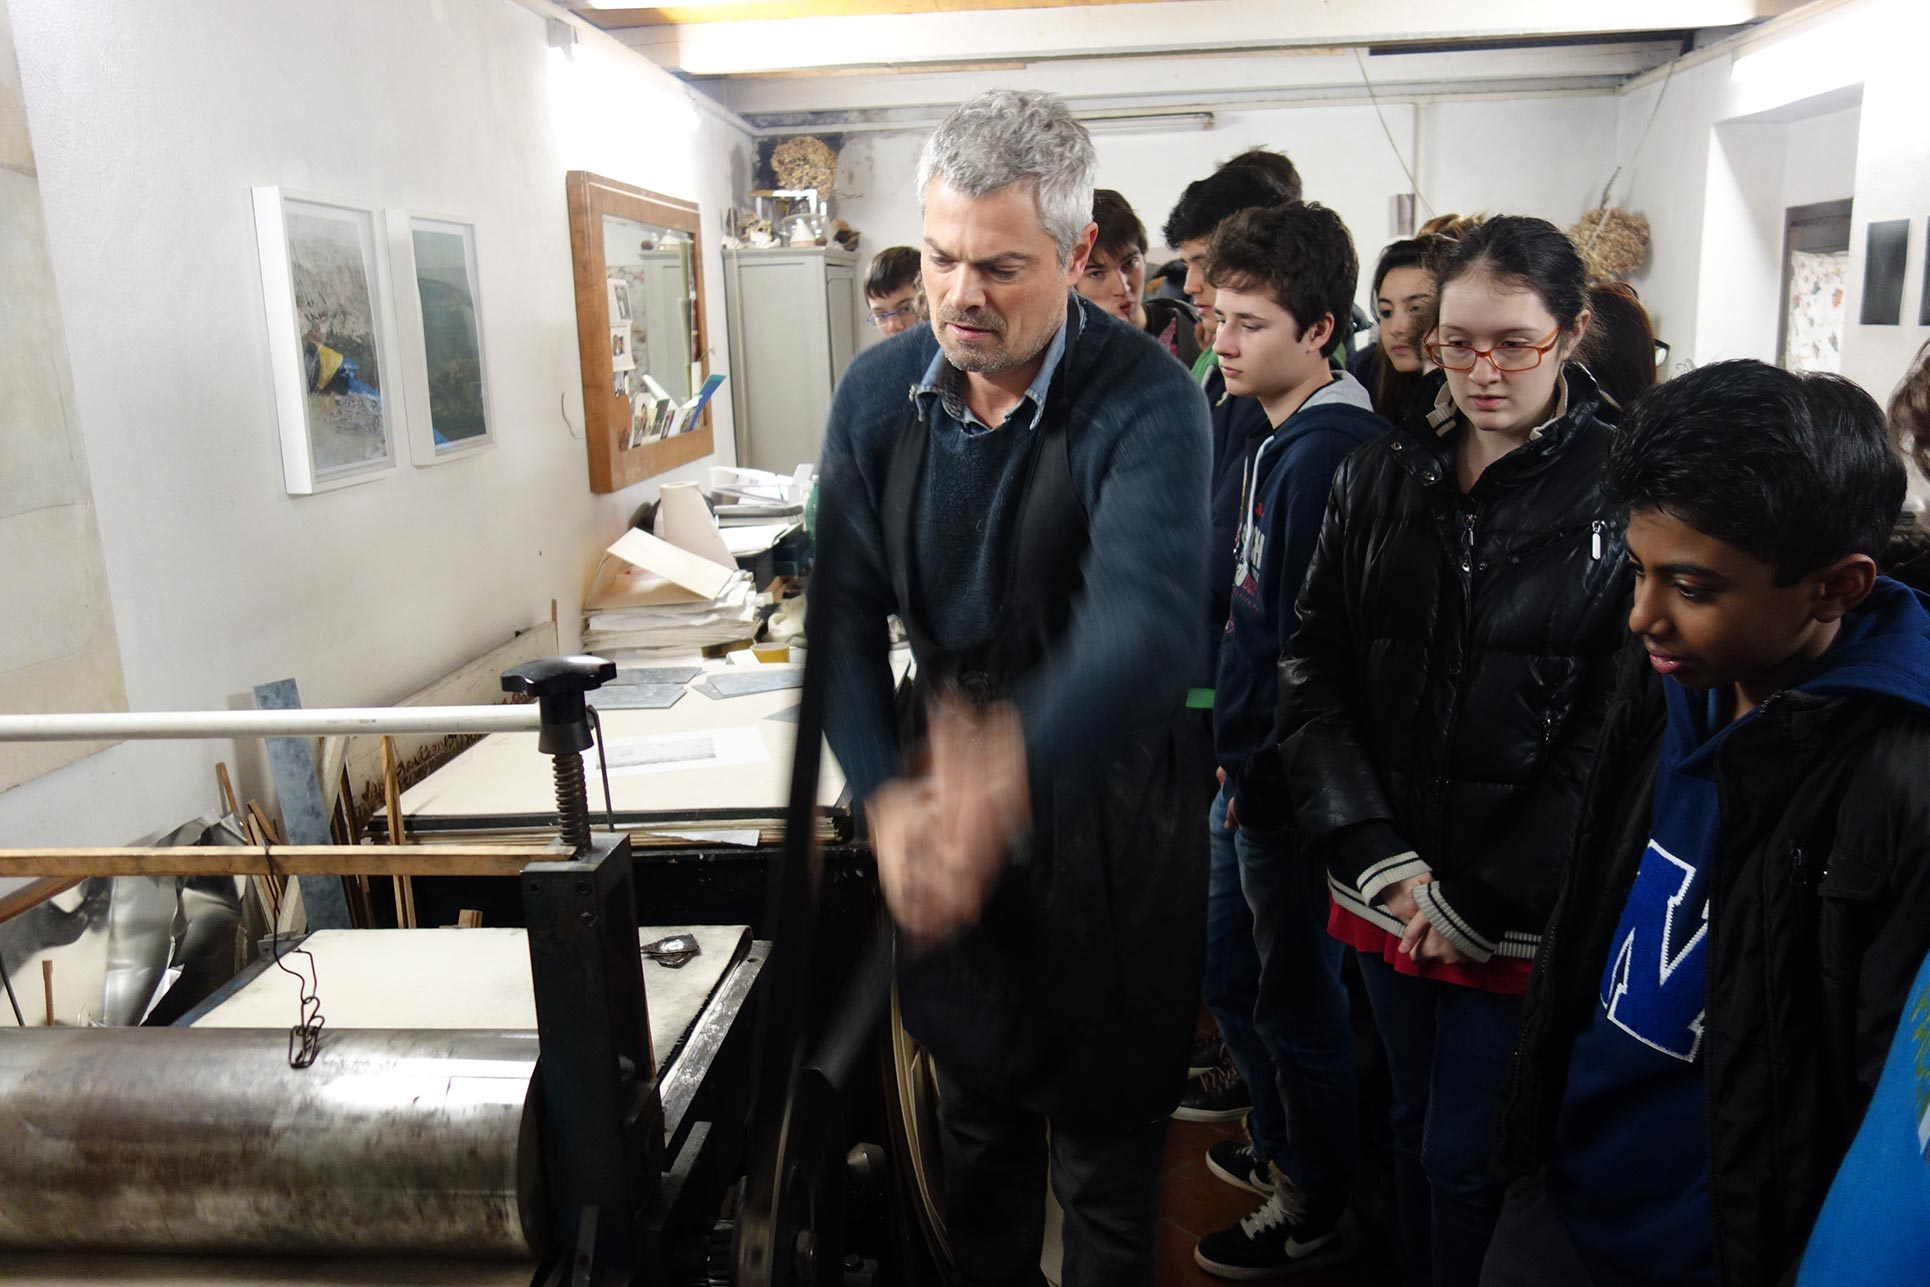 Tancredi Mangano demonstrates how his etching press functions, to the pupils. (Photo: Barbara Fässler)